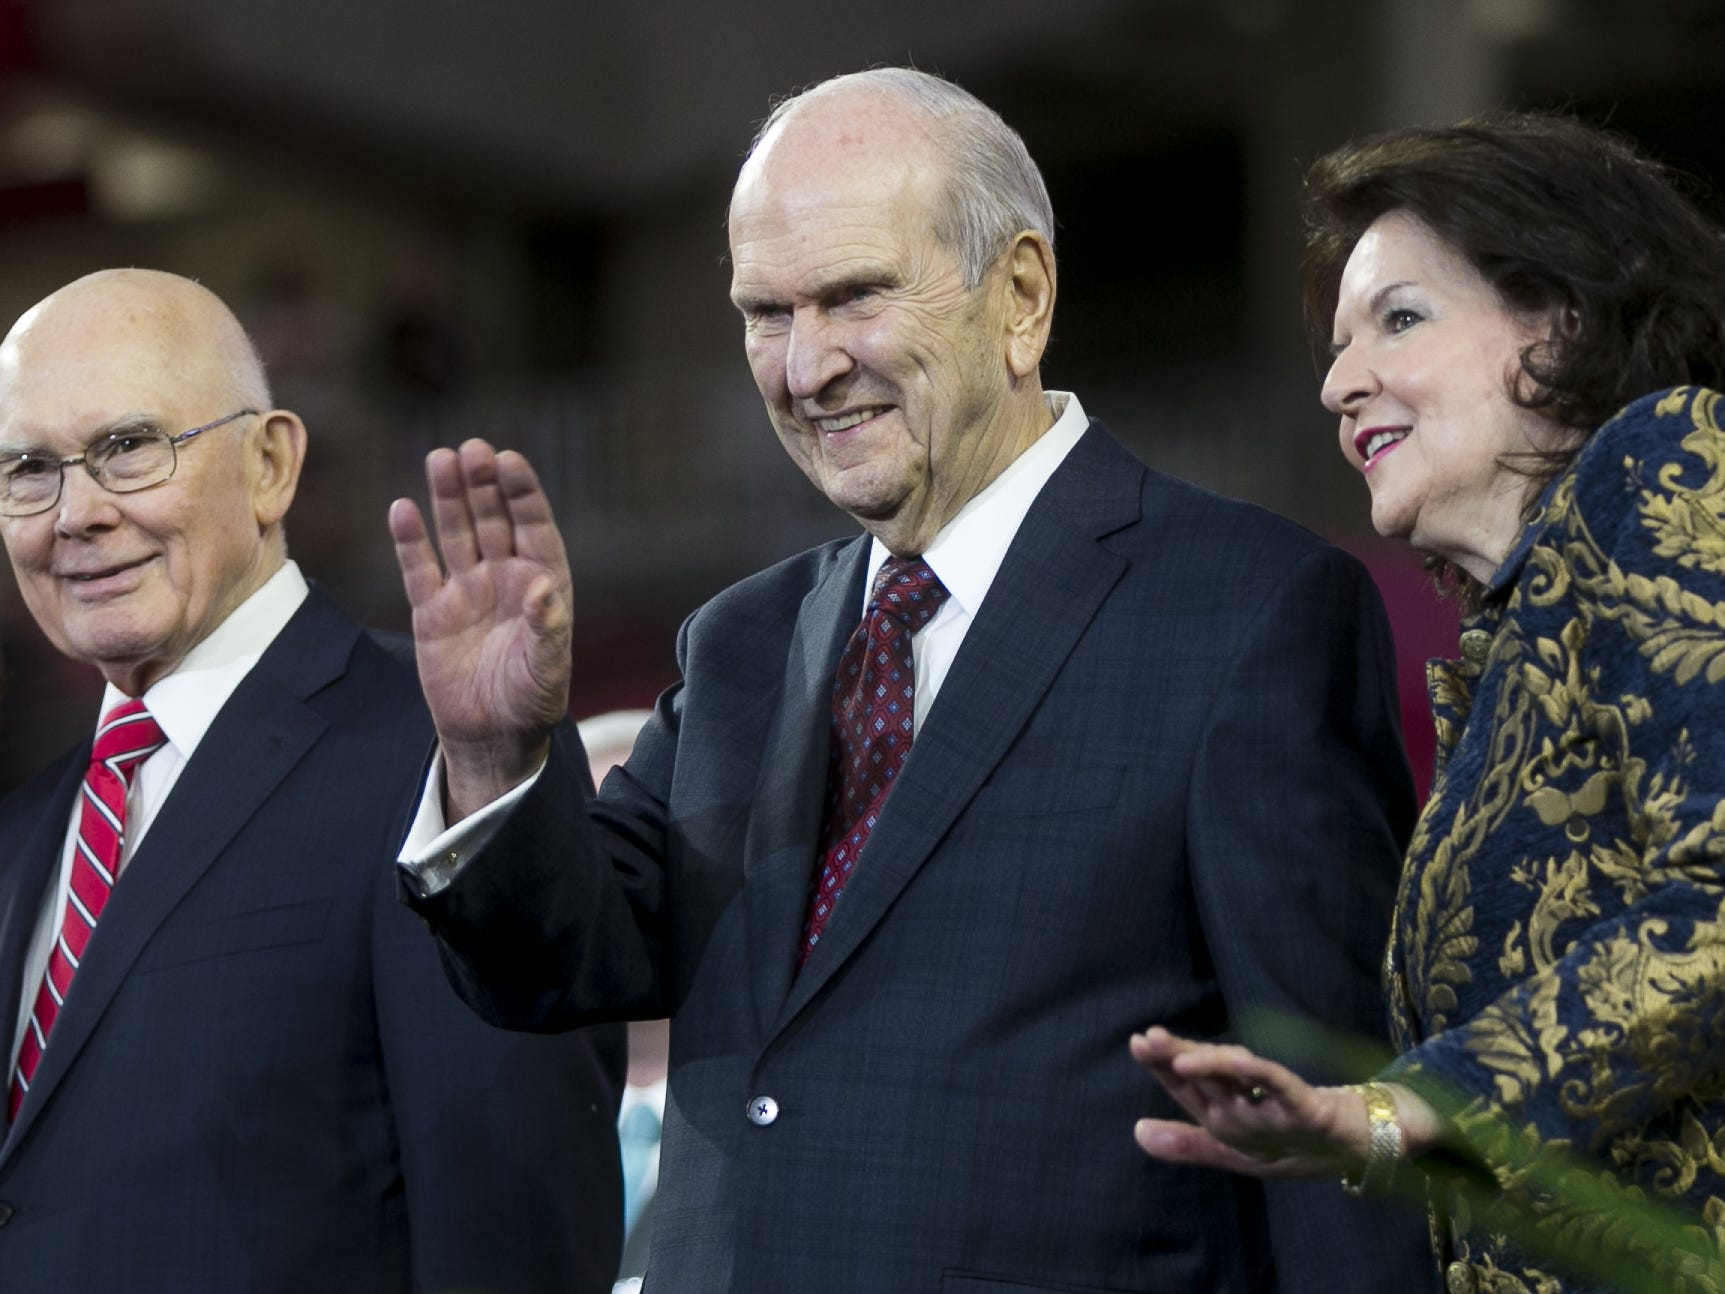 Russell Nelson, the president of the Church of Jesus Christ of Latter-day Saints waves at members of the church at State Farm Stadium before speaking for a devotional in Glendale, Arizona on Sunday, Feb. 10, 2019.